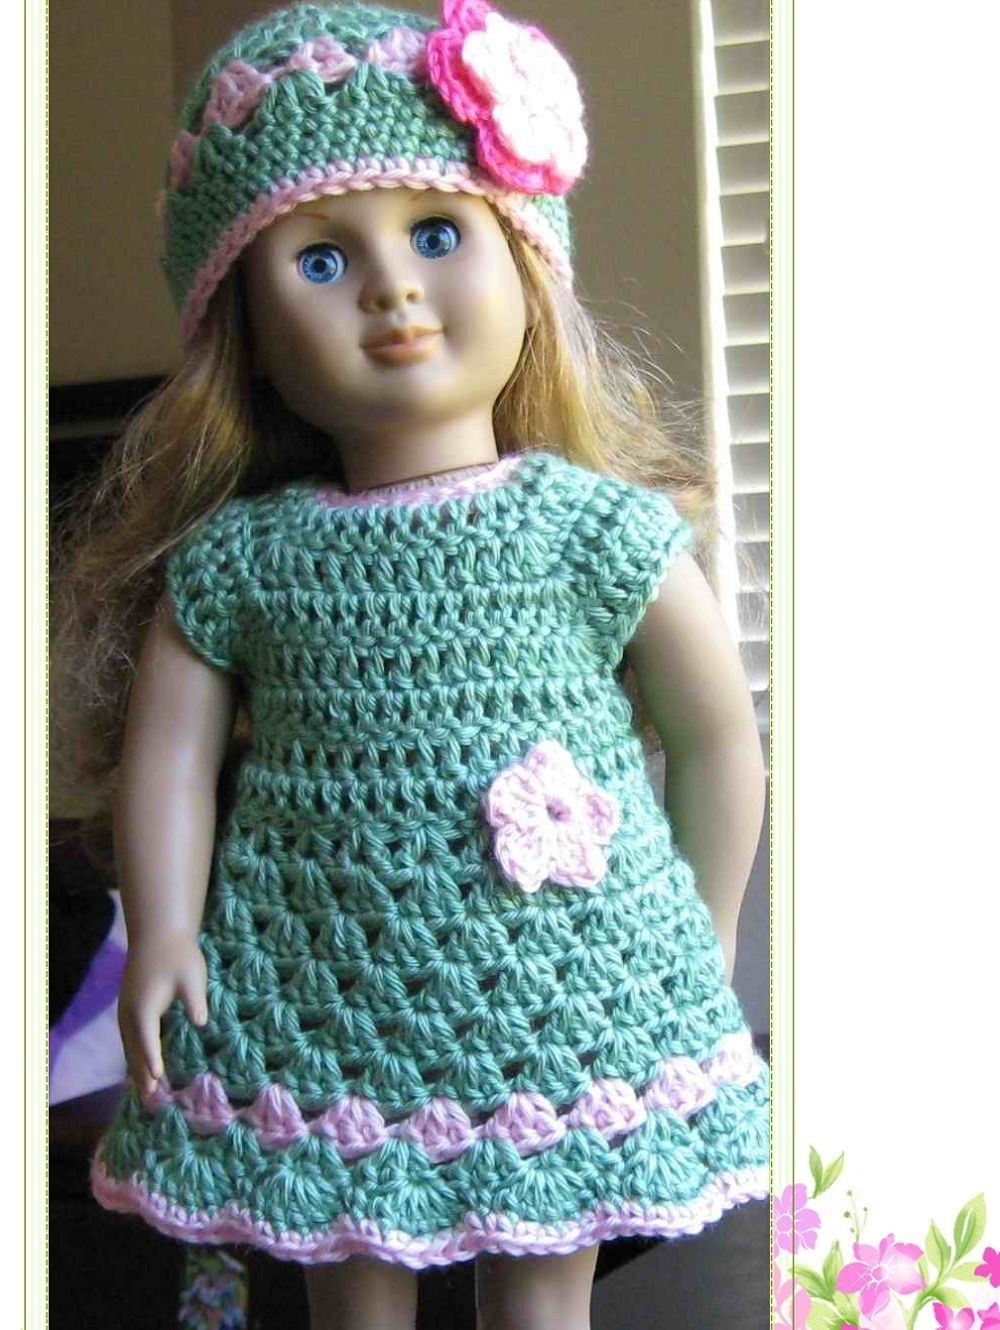 Barbie Doll Clothes Patterns Free | Crochet Patterns: Barbie Doll - Free Printable Crochet Doll Clothes Patterns For 18 Inch Dolls